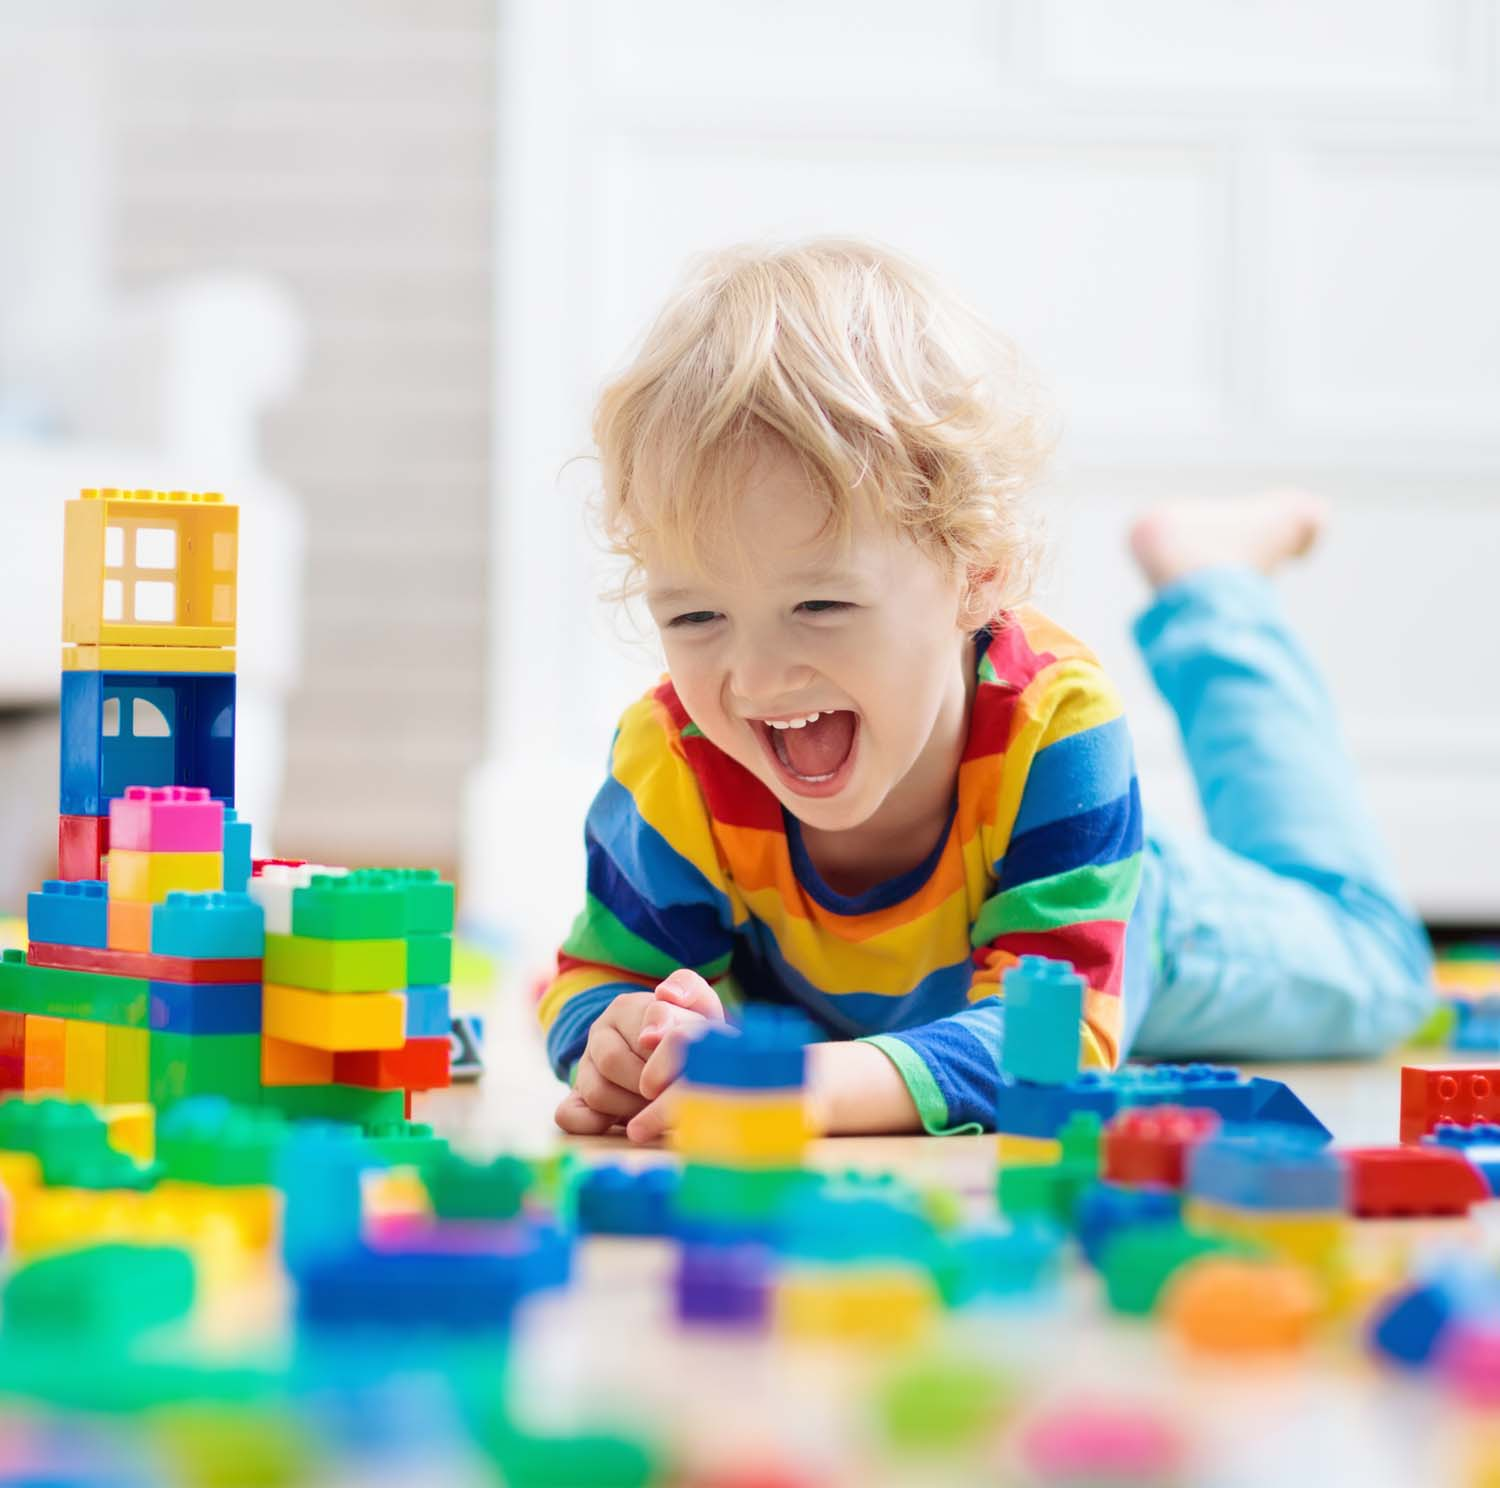 Photo of a Child Playing With Toy Blocks. Toys For Kids.